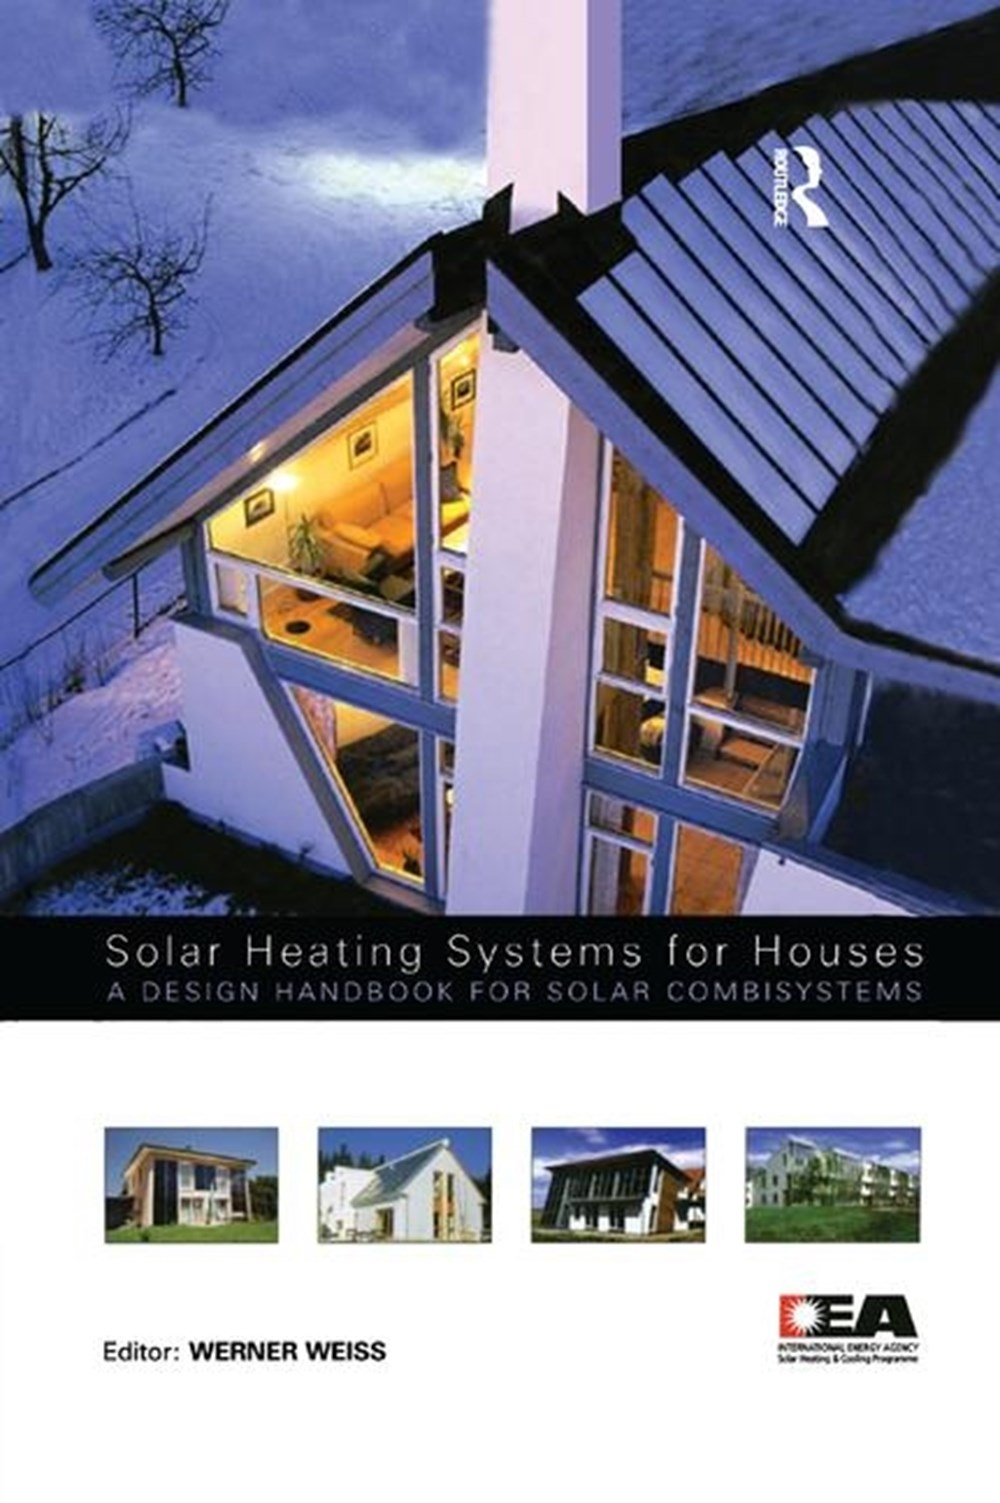 Solar Heating Systems for Houses A Design Handbook for Solar Combisystems